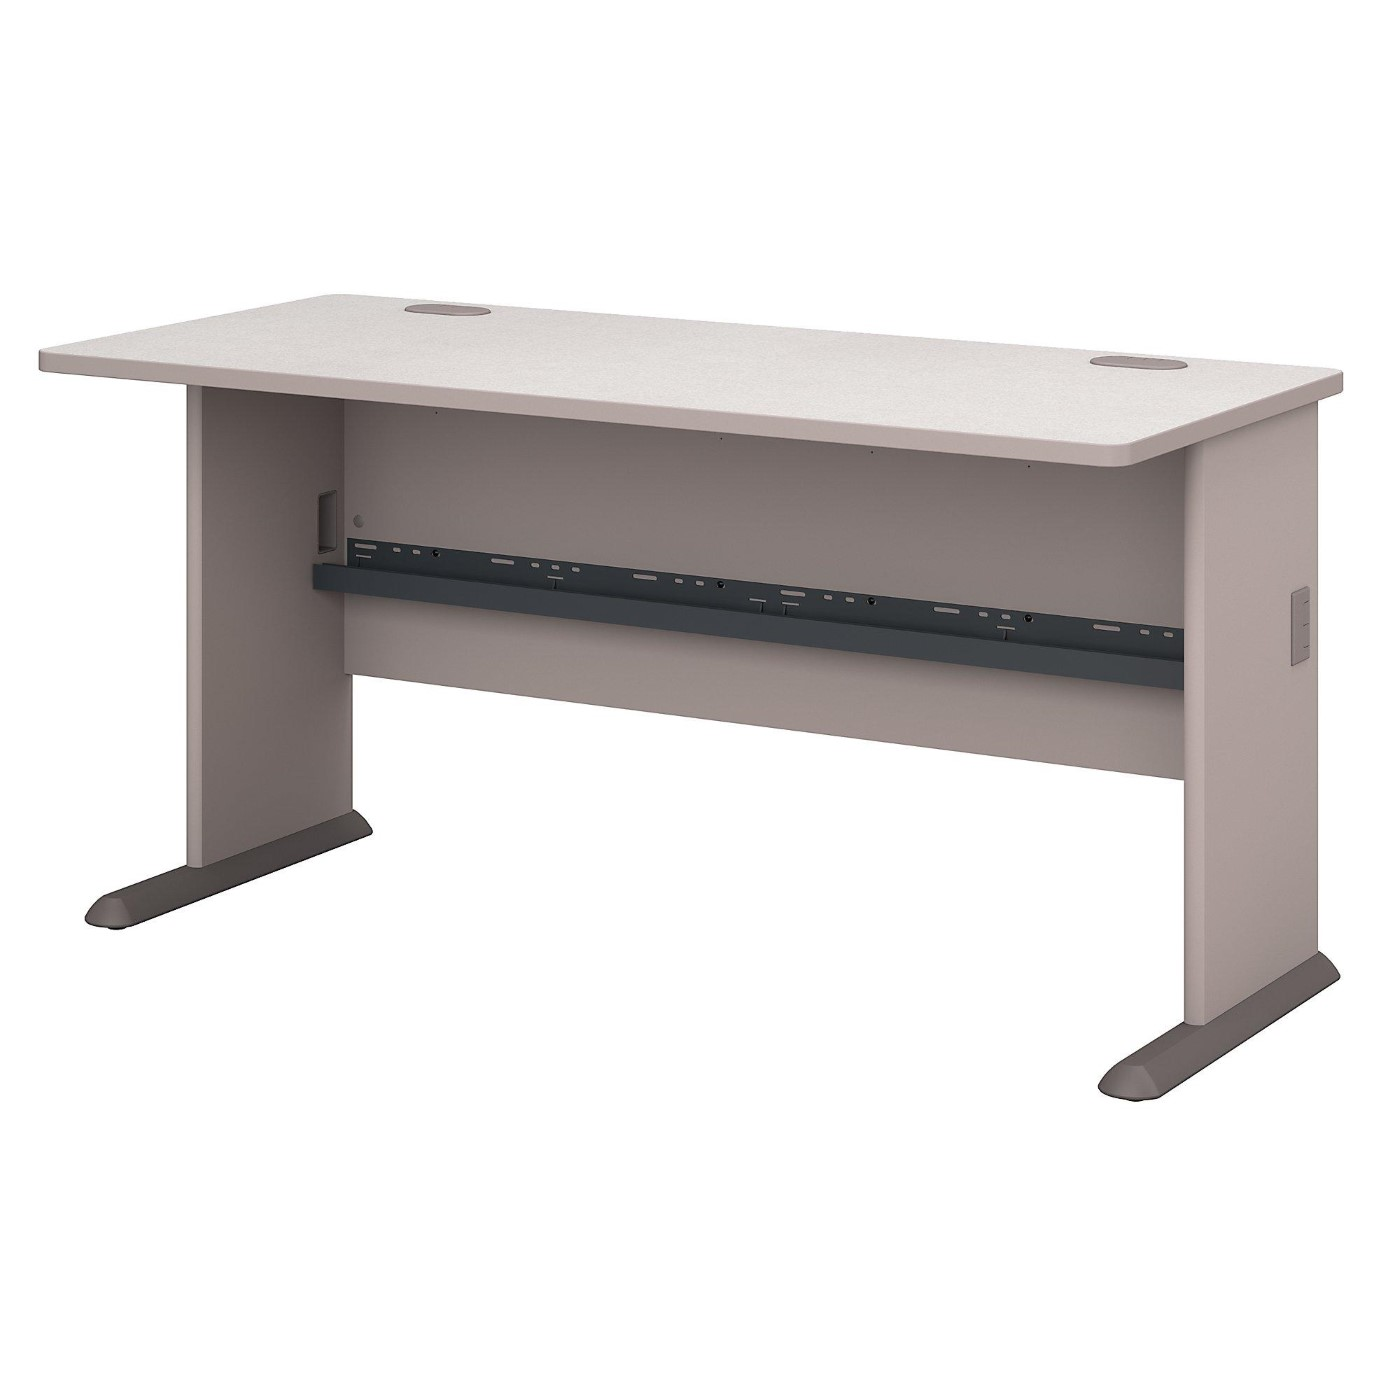 BUSH BUSINESS FURNITURE SERIES A 60W DESK. FREE SHIPPING  VIDEO BELOW.